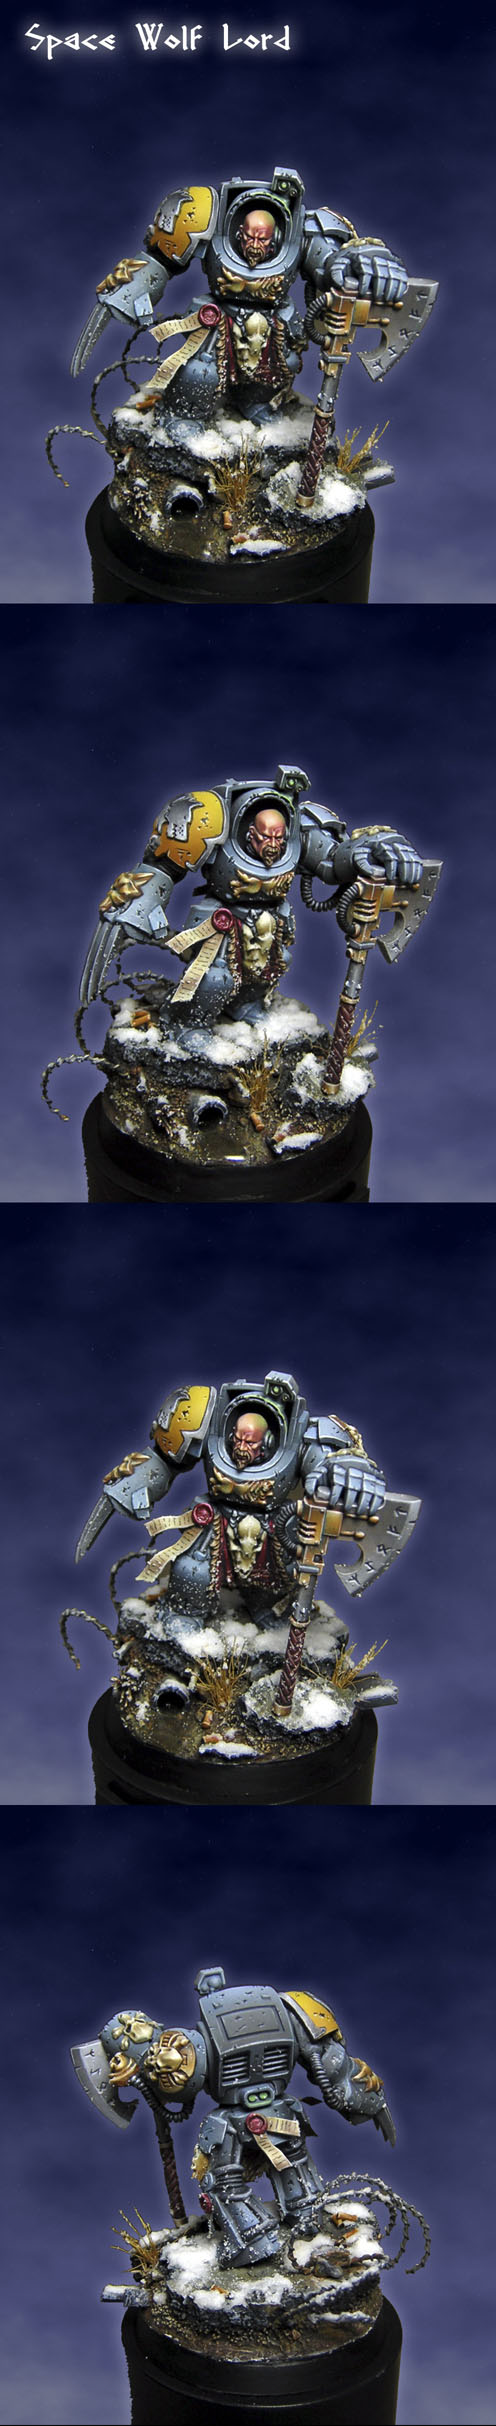 Space Wolf Lord, Silver GD Spain 2011